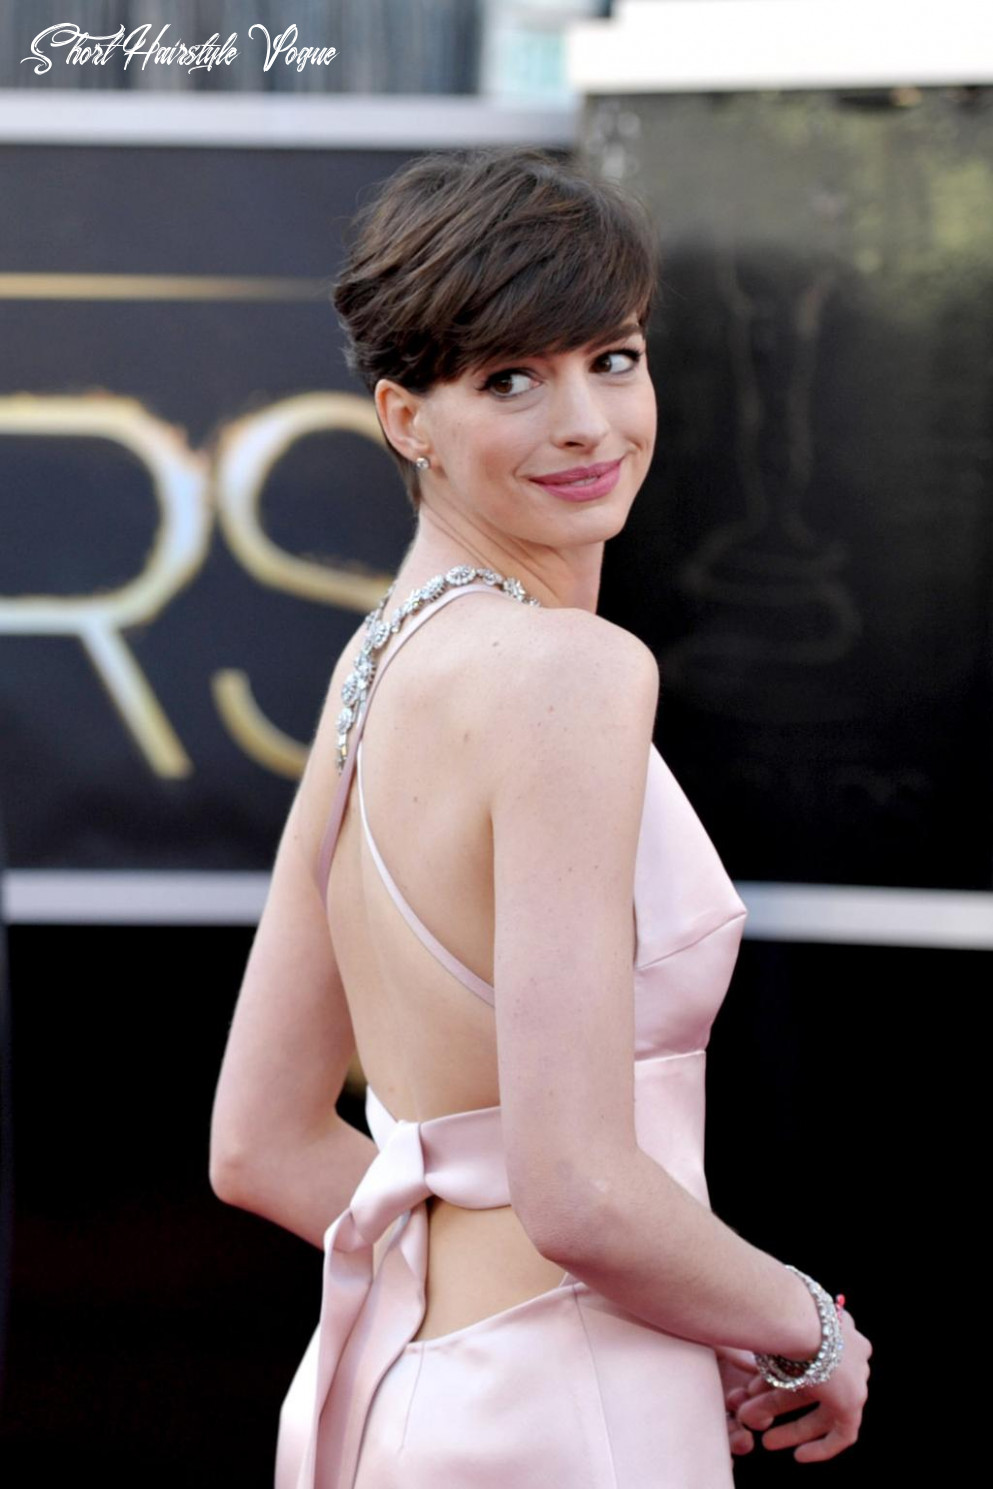 Short hair styles: your expert guide vogue australia short hairstyle vogue